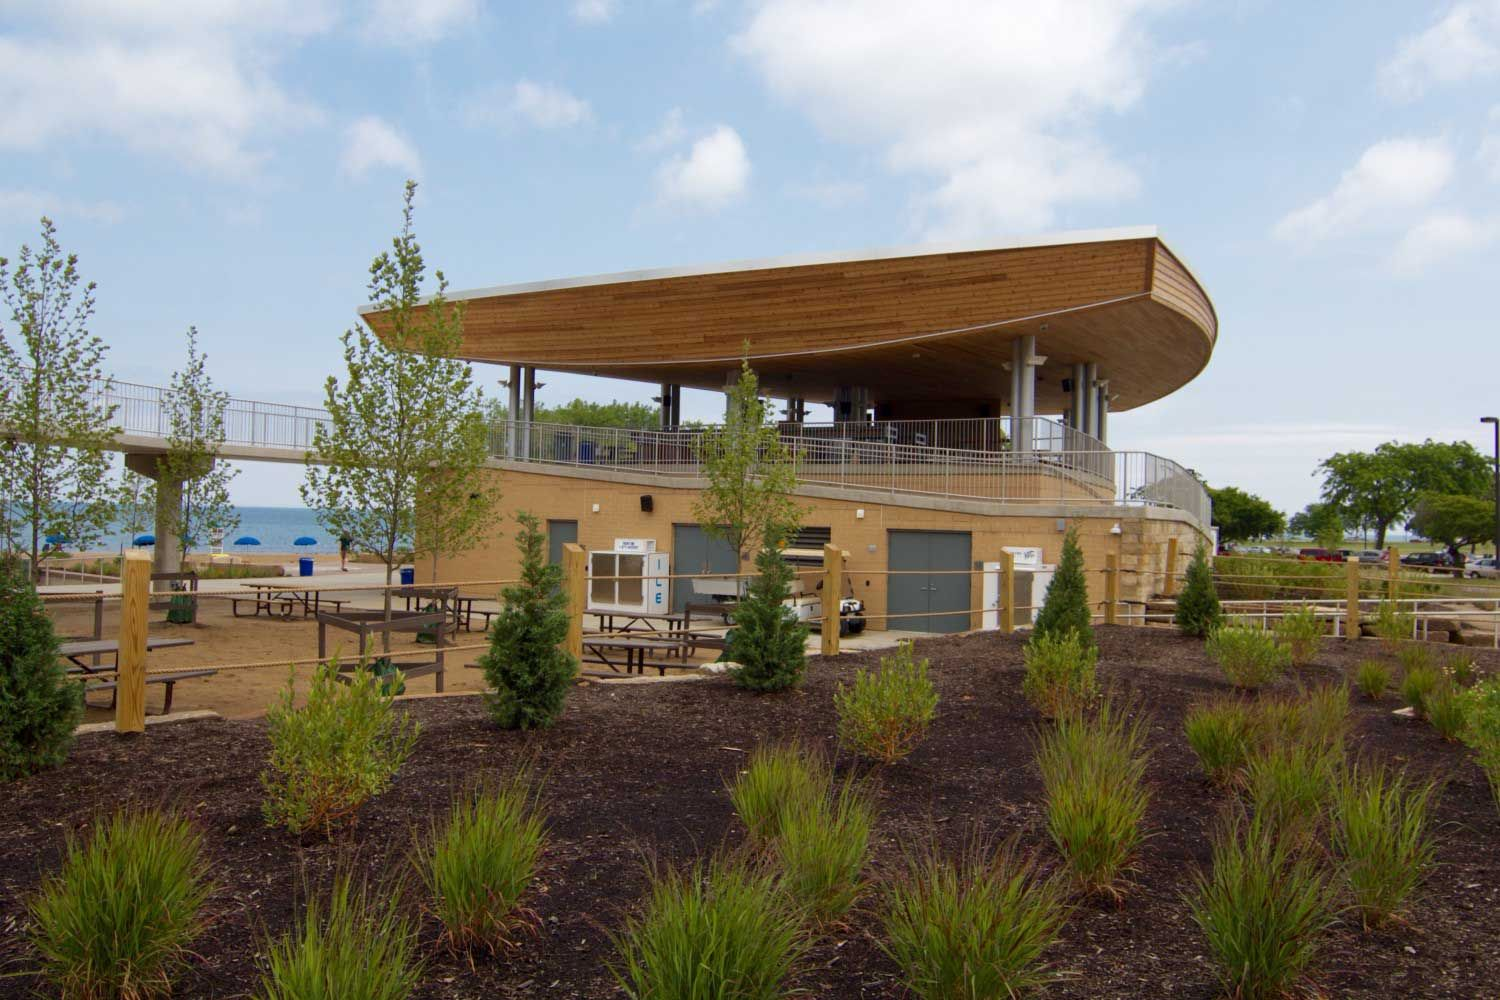 EDGEWATER BEACH HOUSE